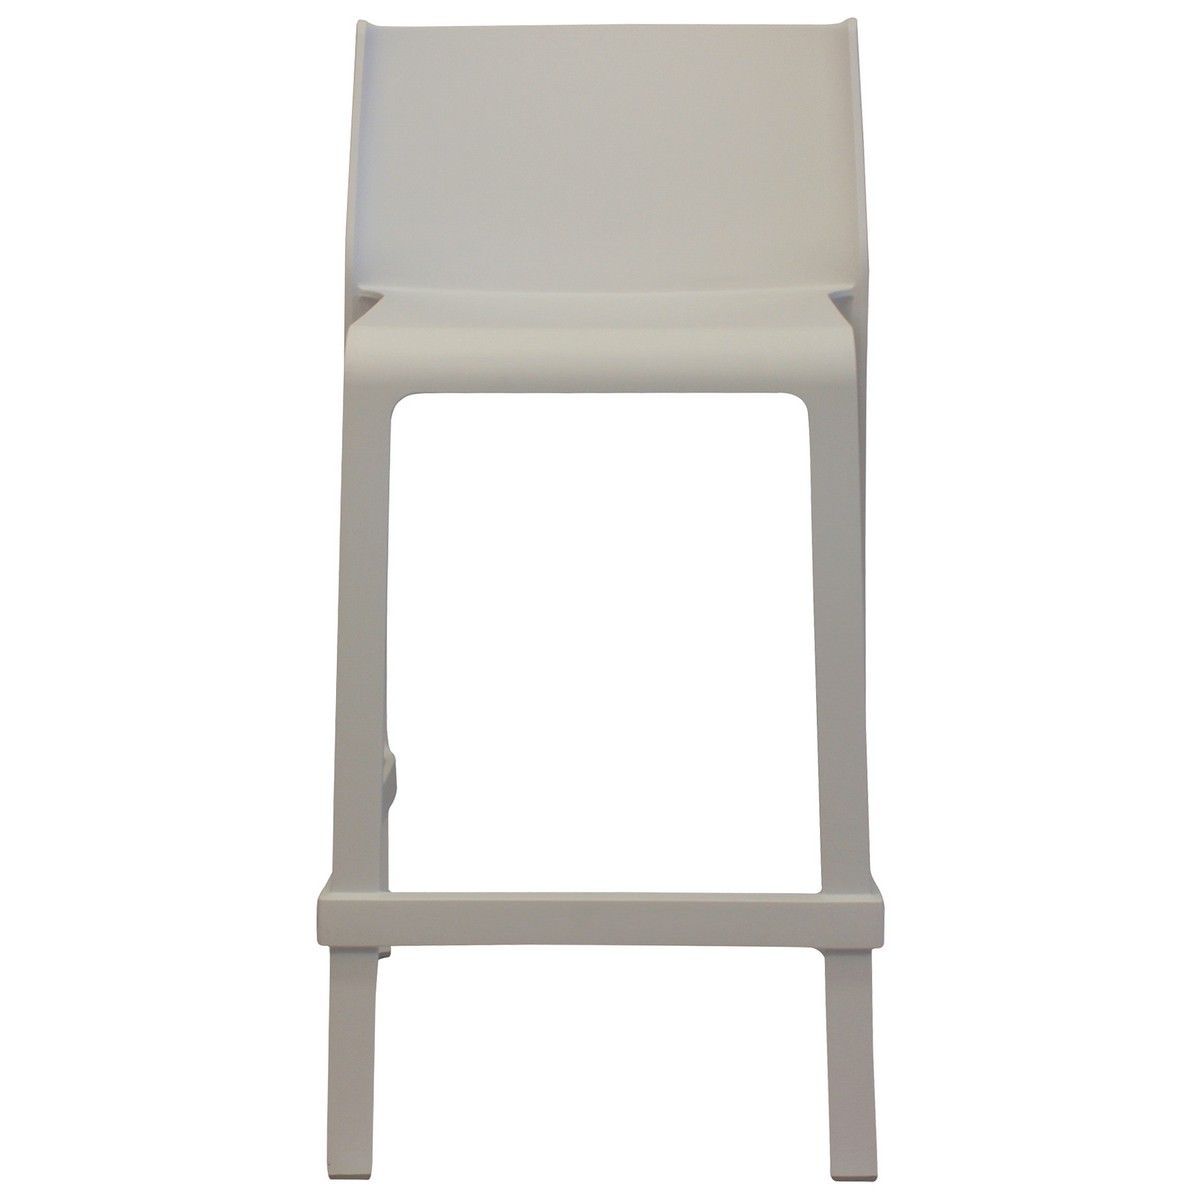 Trill Italian Made Commercial Grade Indoor / Outdoor Counter Stool, White